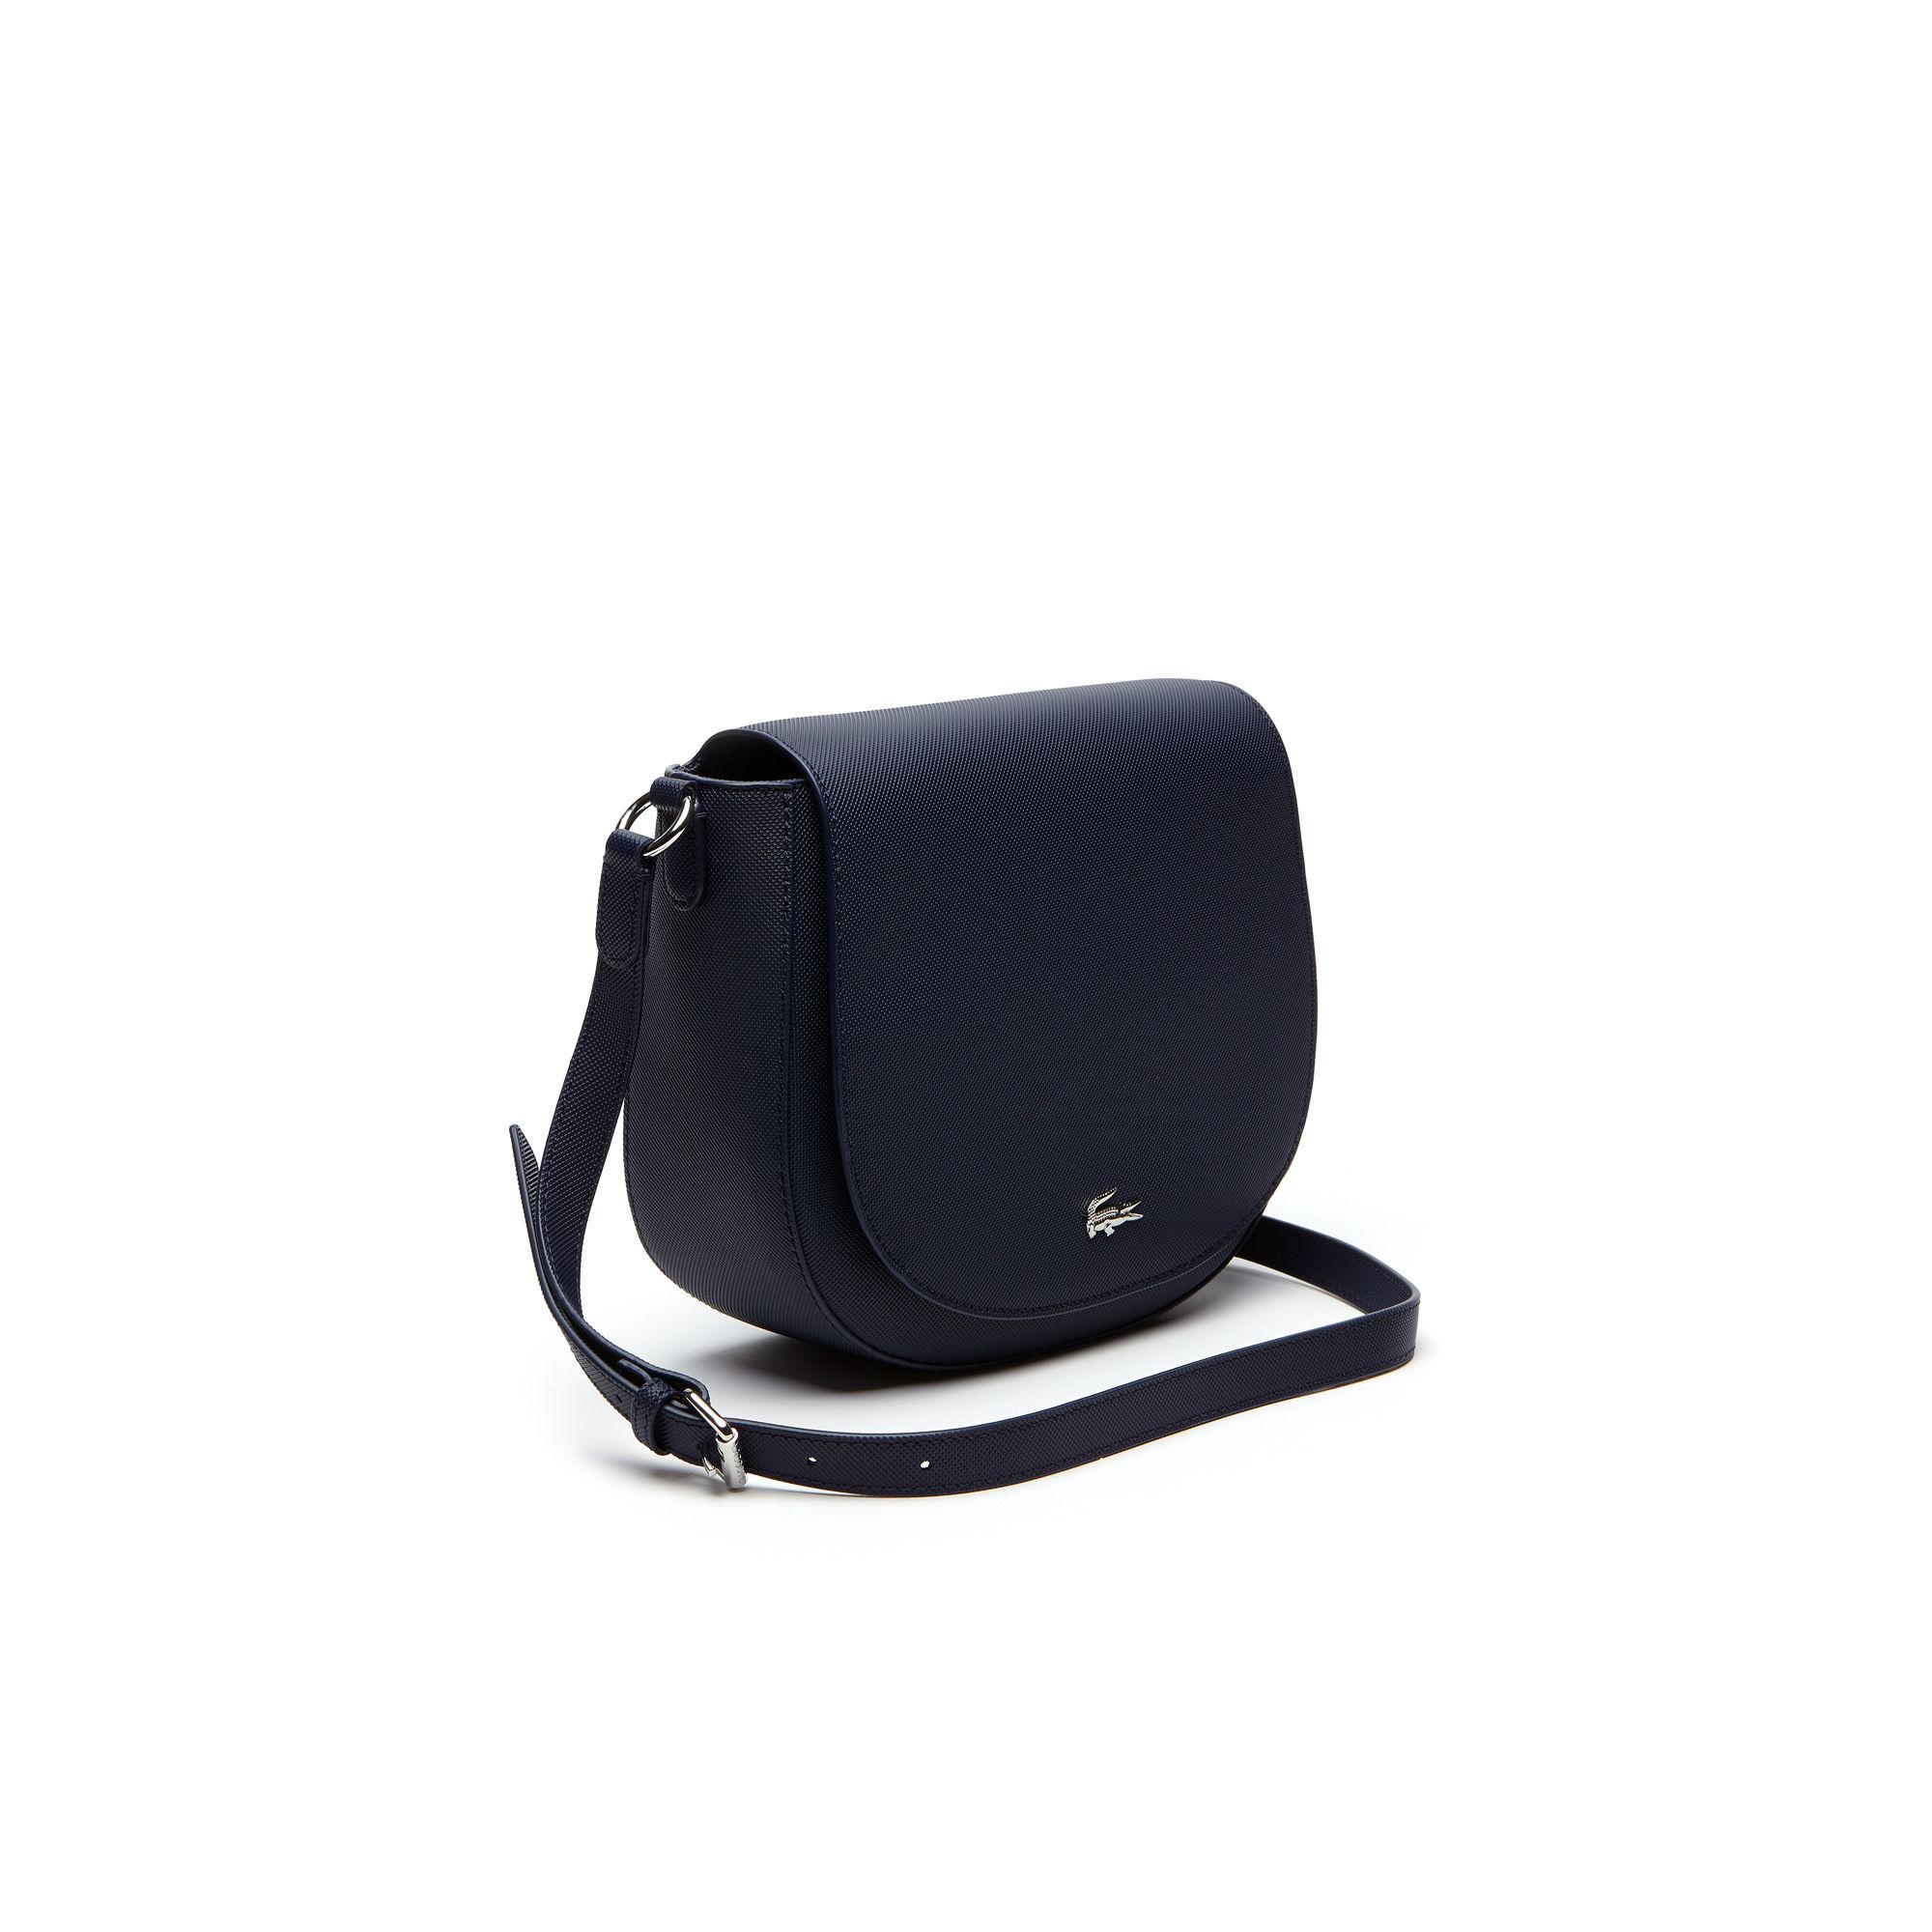 06165d68e Lyst - Lacoste Daily Classic Coated Piqué Canvas Round Crossover Bag ...